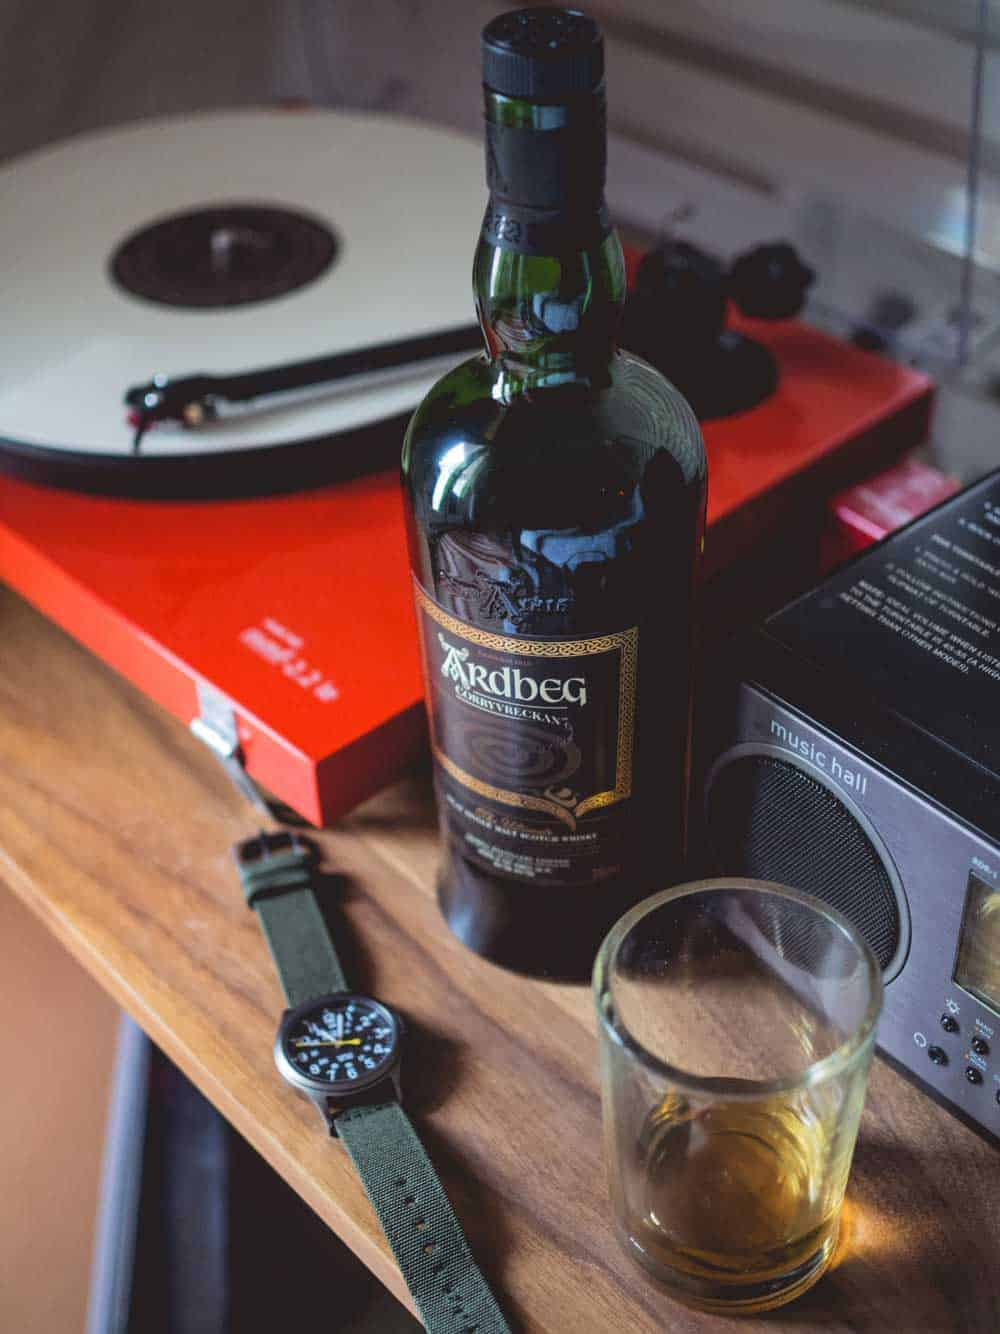 Ardbeg Corryvreckan - timex expedition - record player